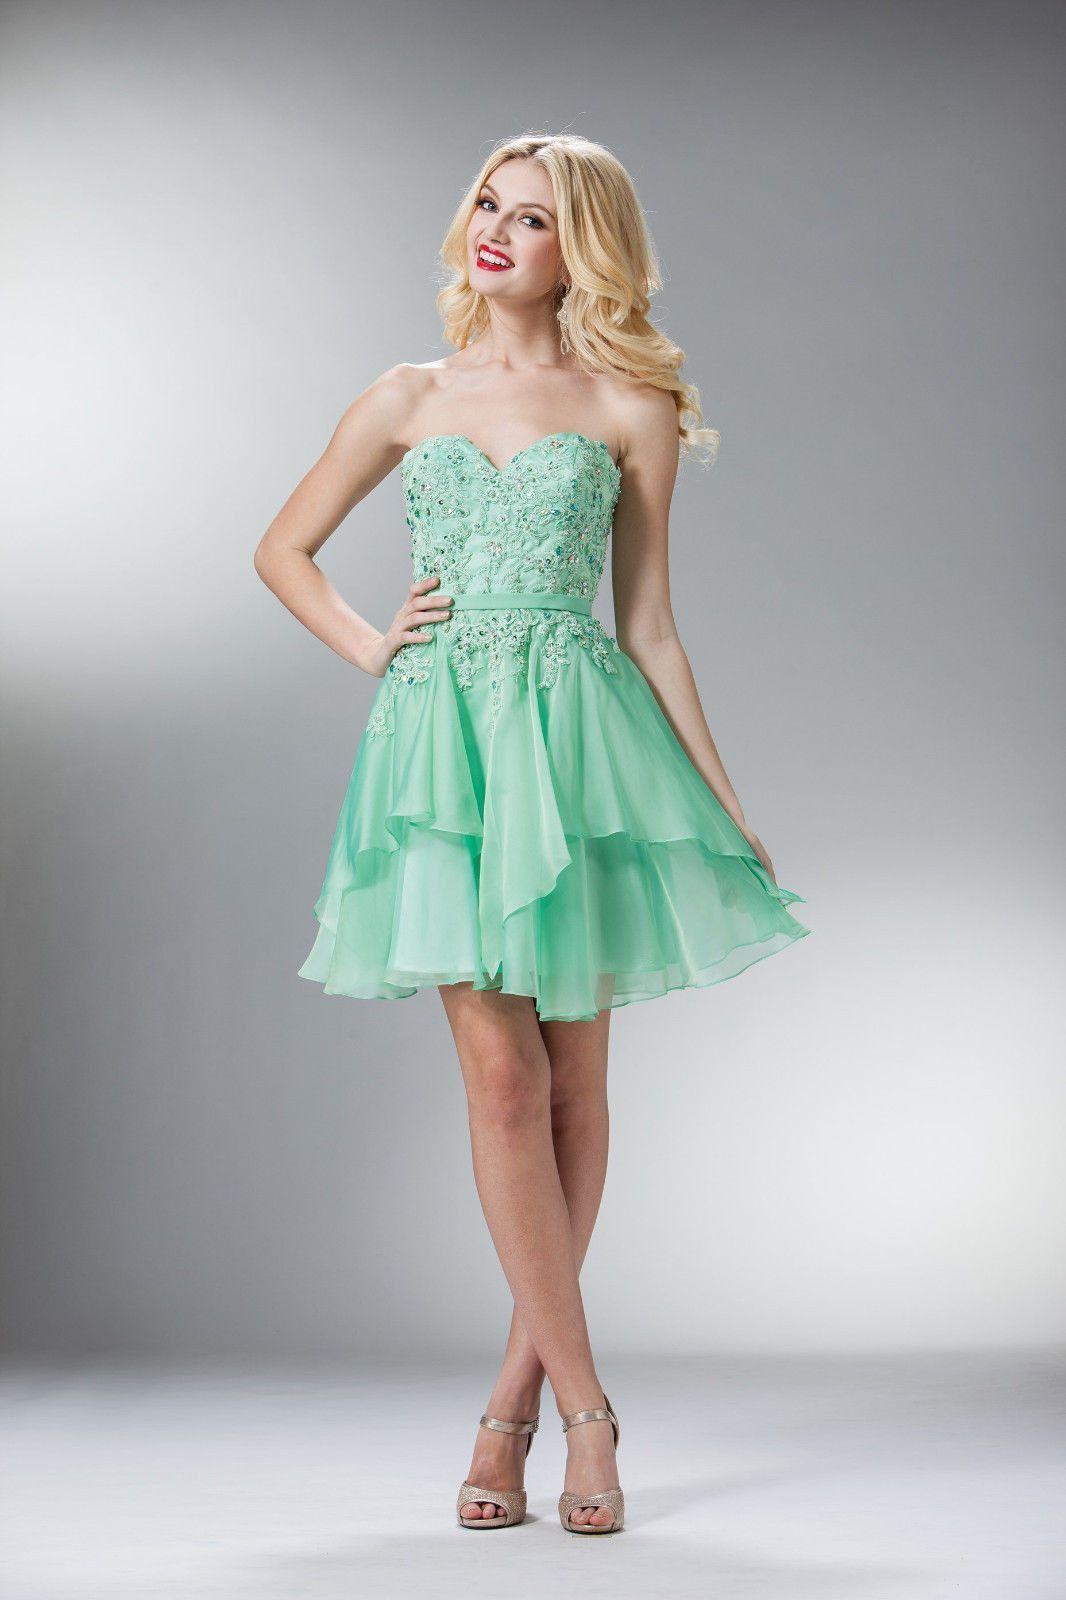 This cute little number has a short layered skirt with a beaded and